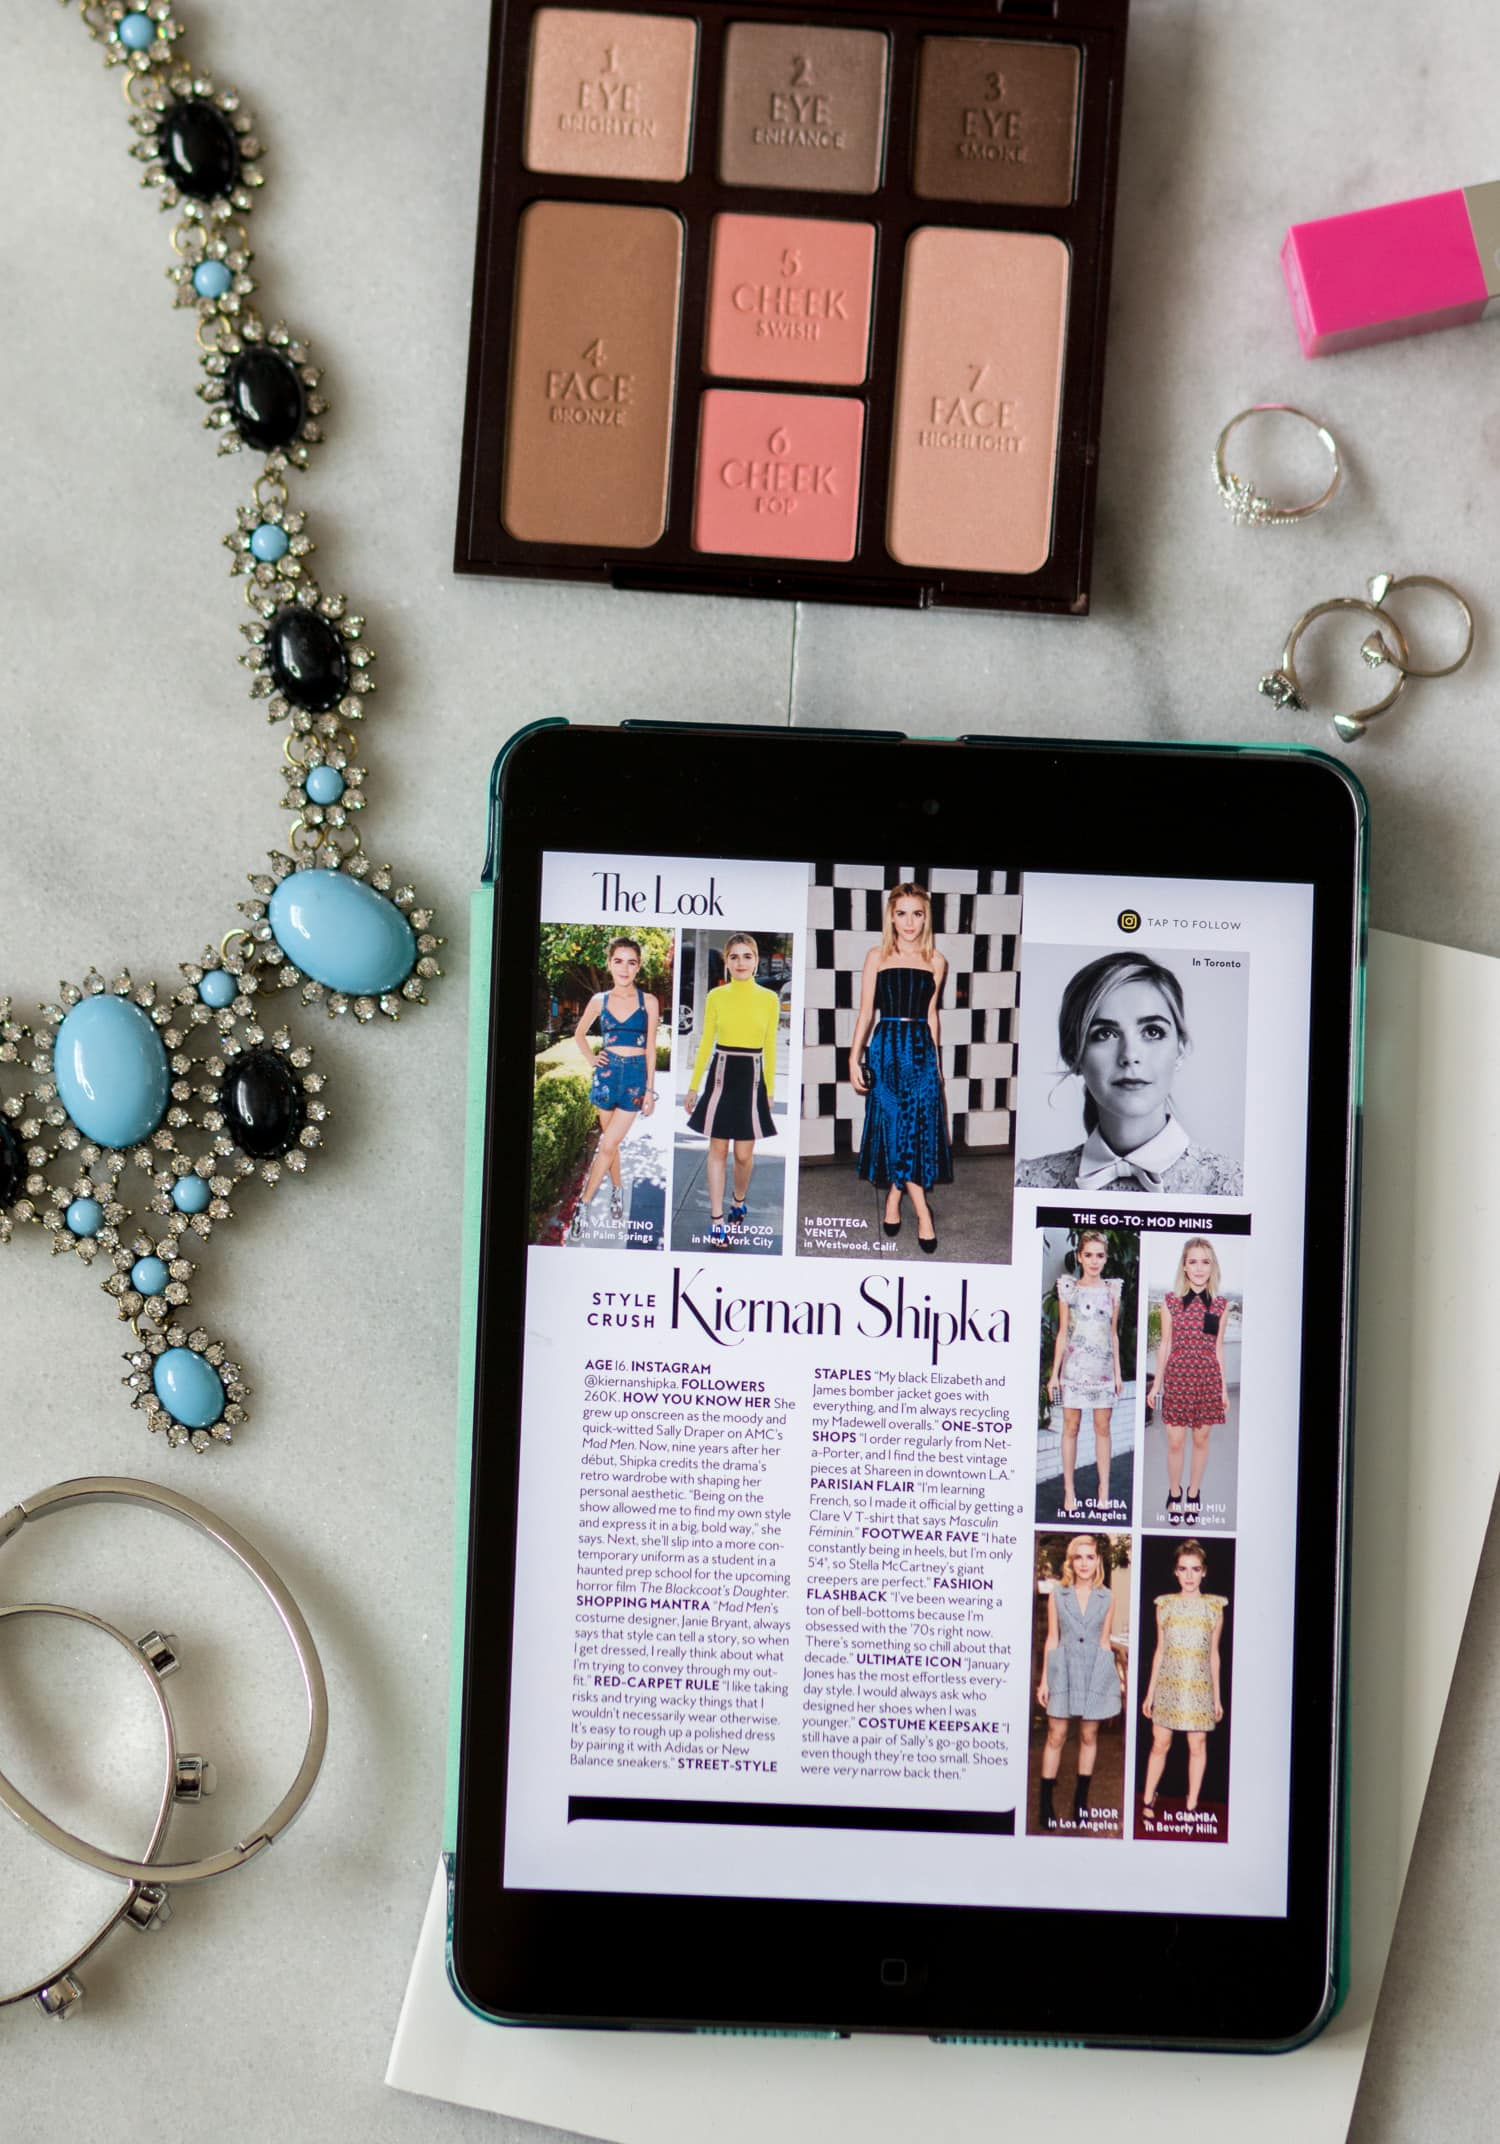 Style blogger Ashley Brooke is sharing how to get your favorite magazine subscriptions for less with the Texture app + sharing an exclusive discount code!